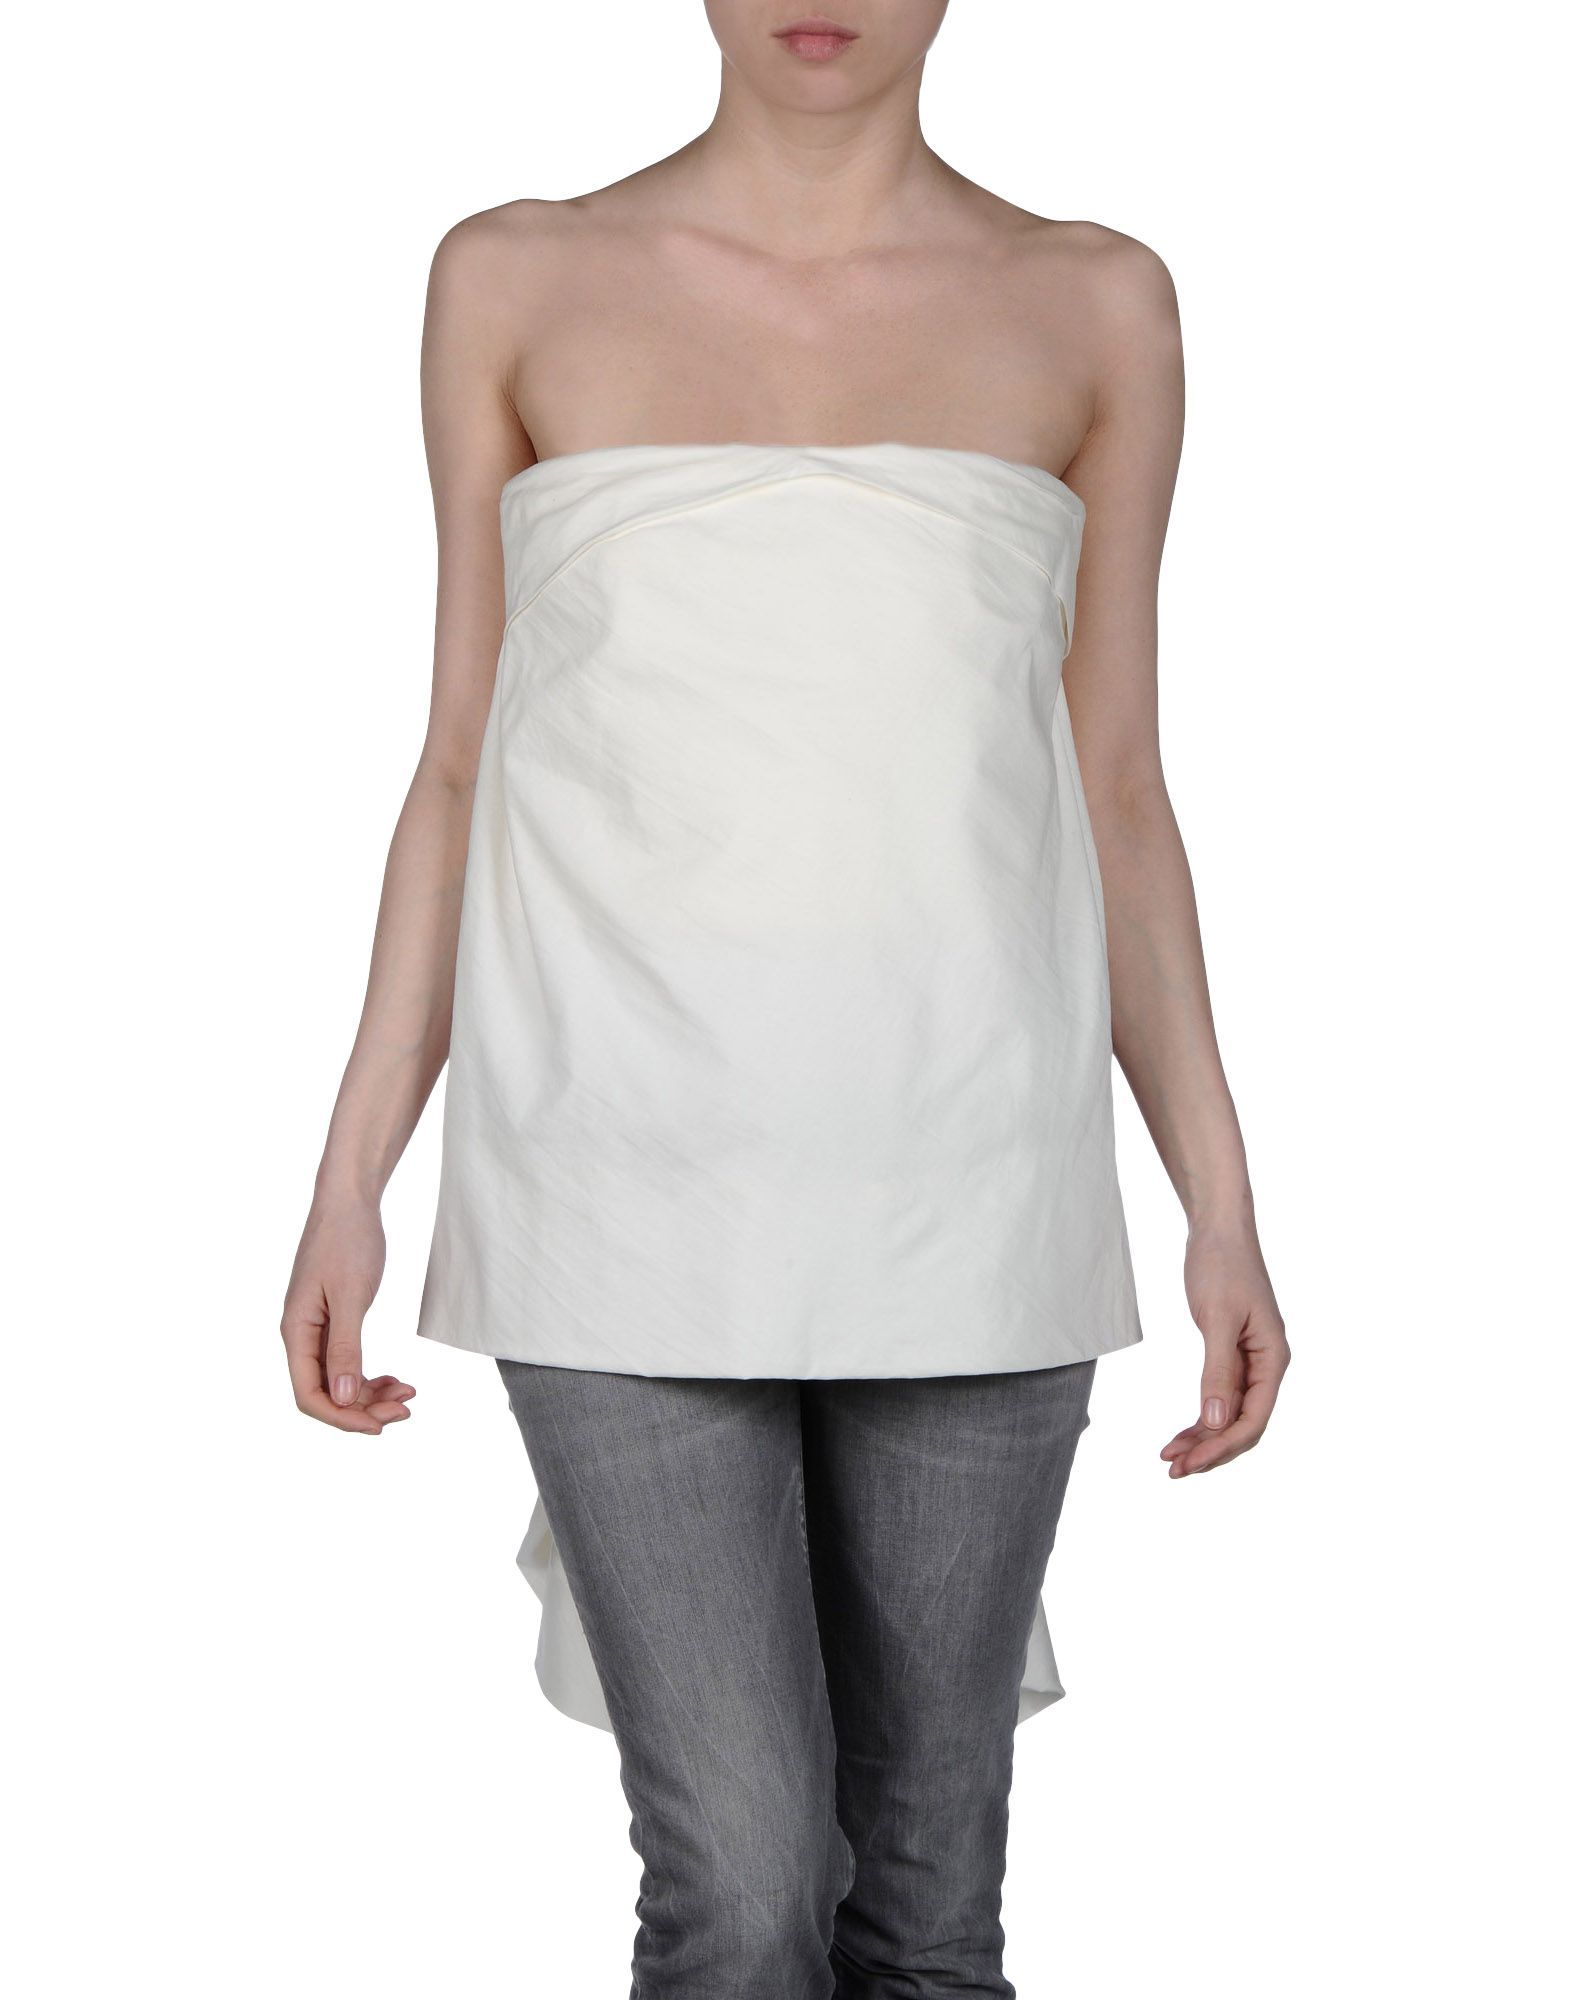 Discount Cheap Online Cheap Lowest Price TOPWEAR - Tube tops Rick Owens Cheap Real Finishline XfSsBnHfjP